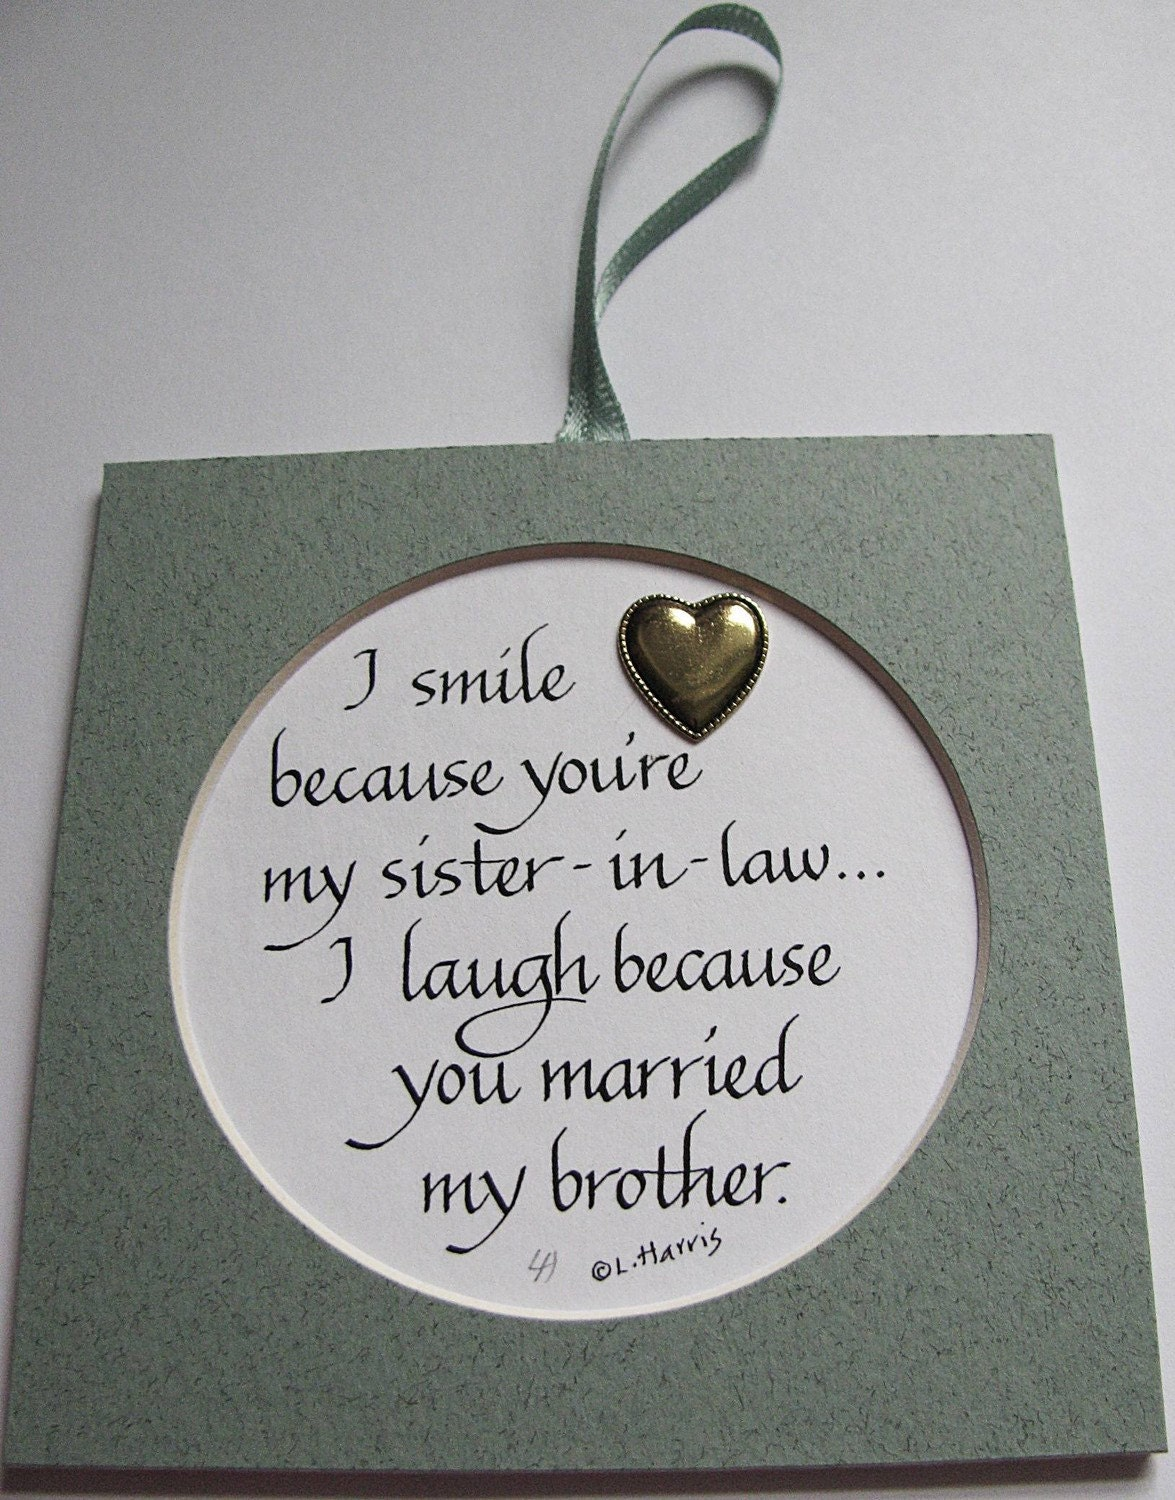 Wedding Anniversary Gift For My Sister : Items similar to I Smile Because Youre My Sister-In-Law on Etsy